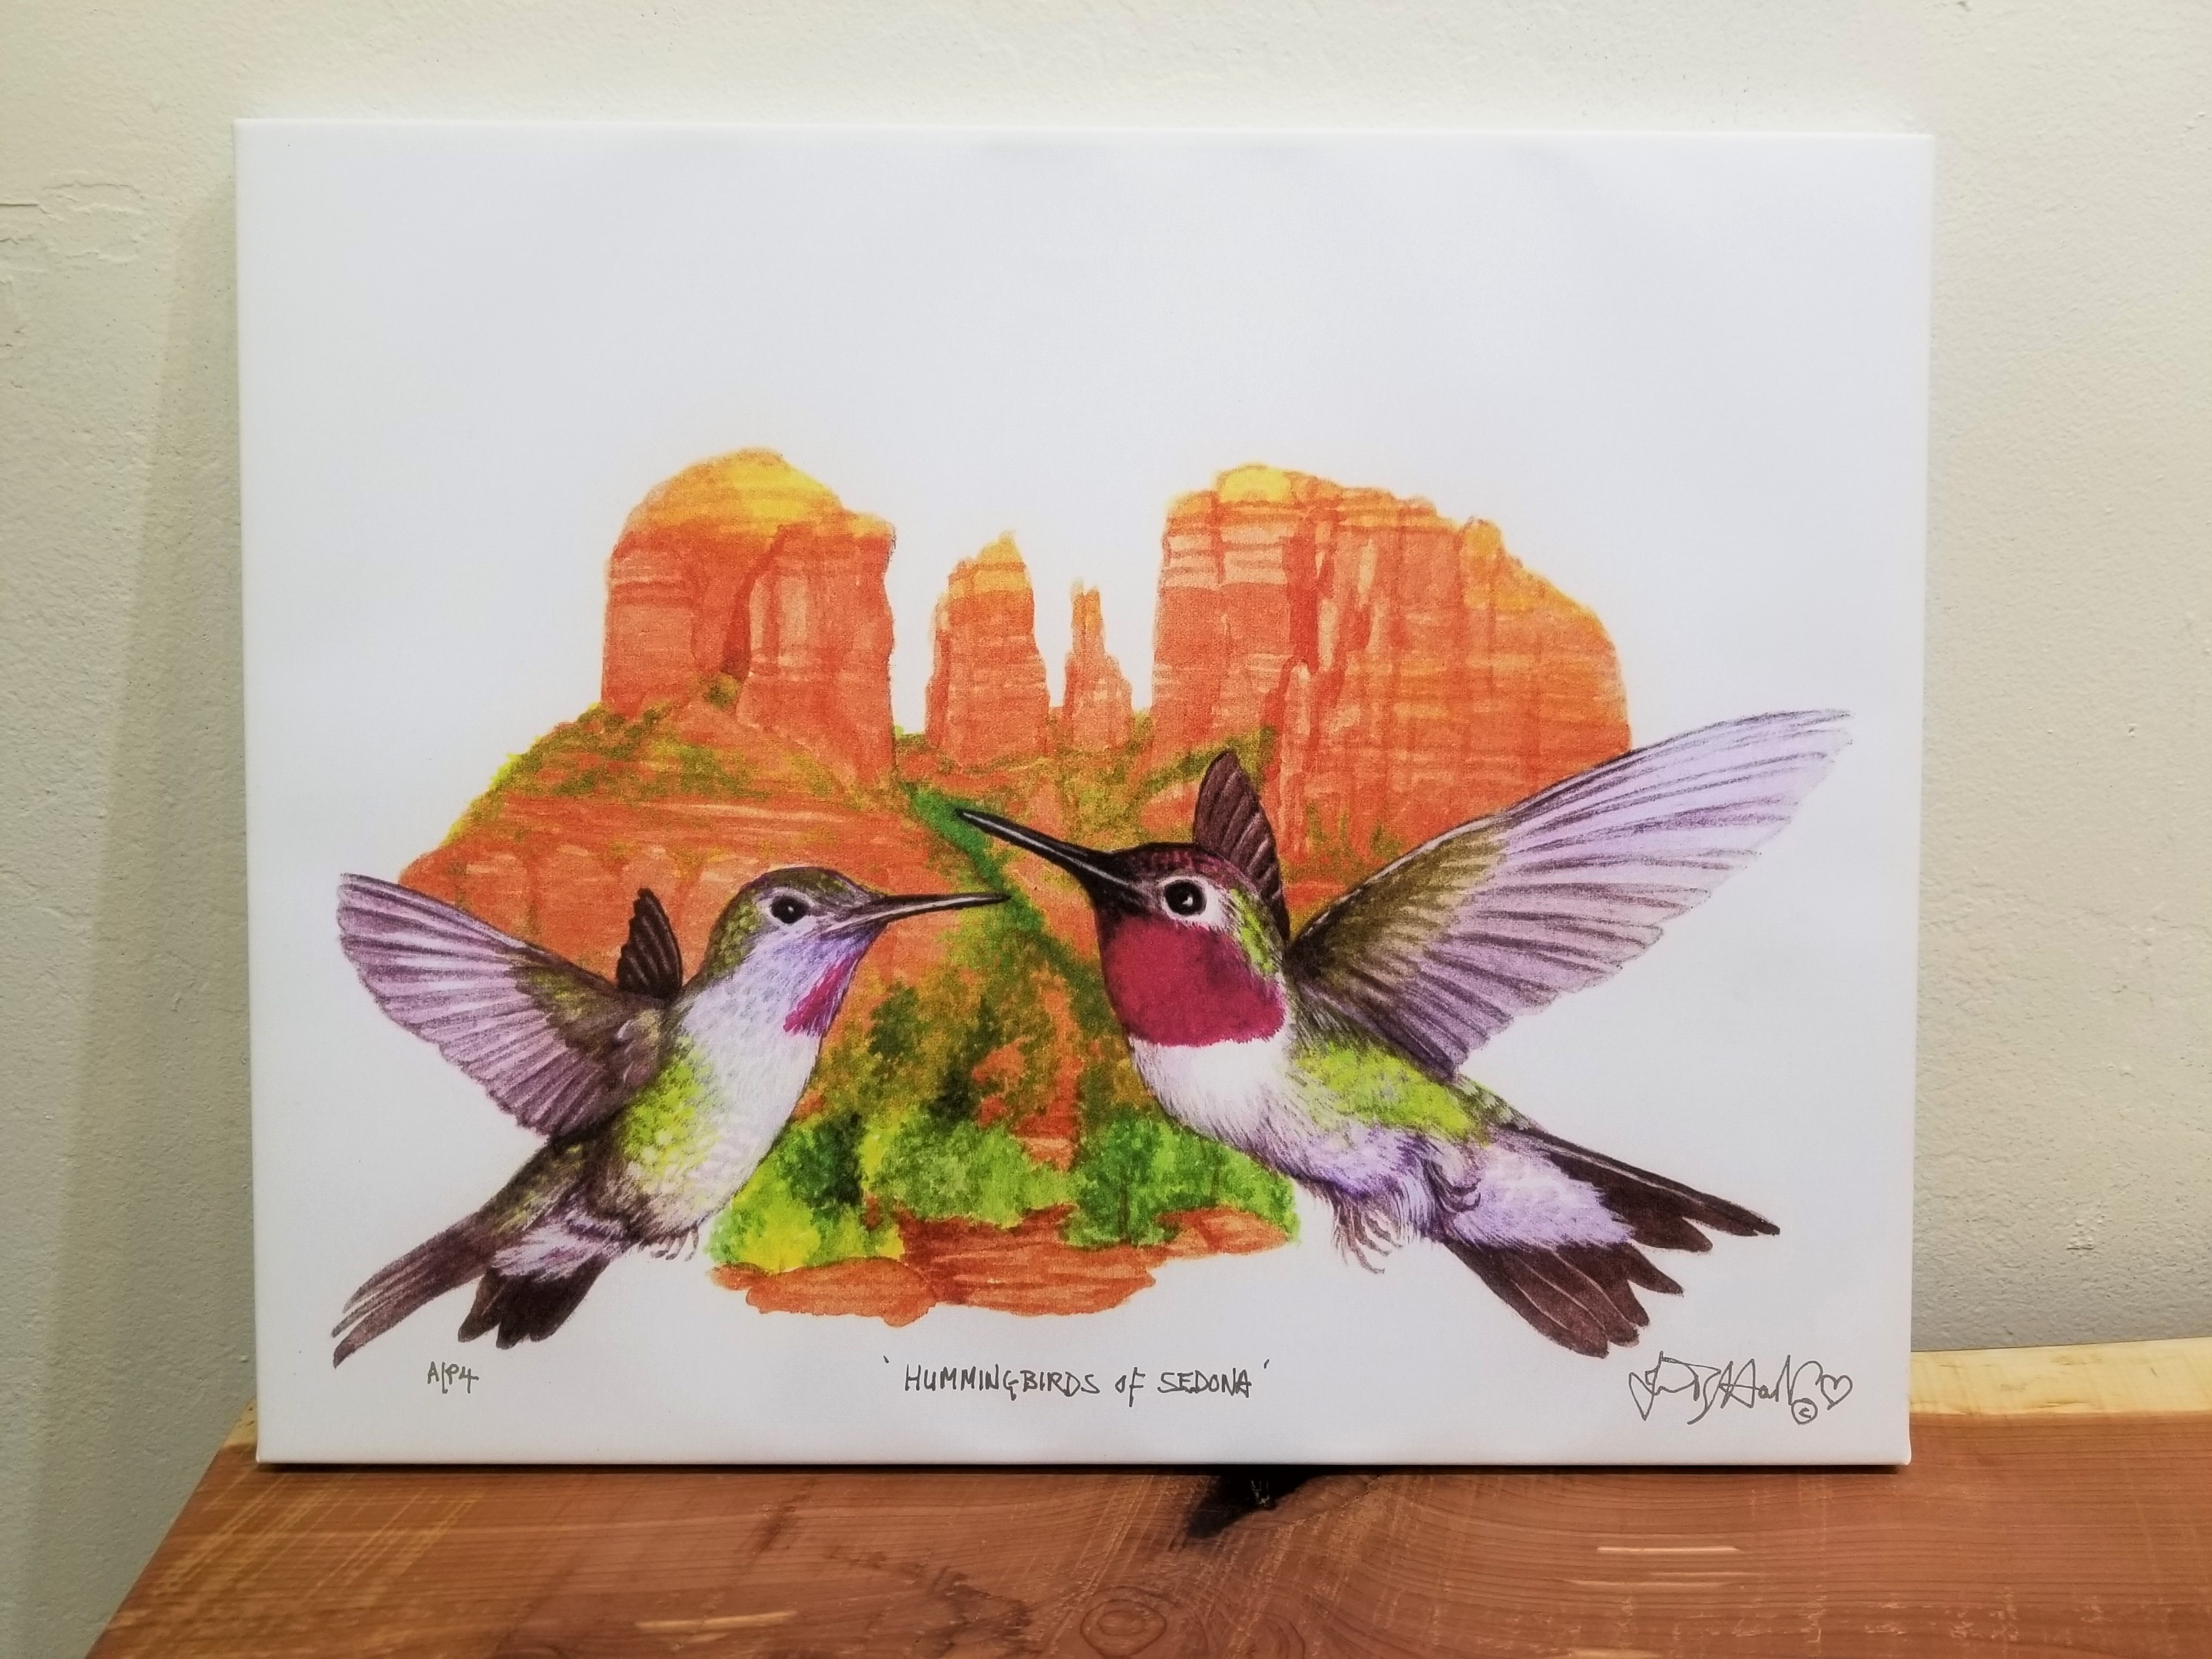 mmingbirds of Sedona, June Payne Hart